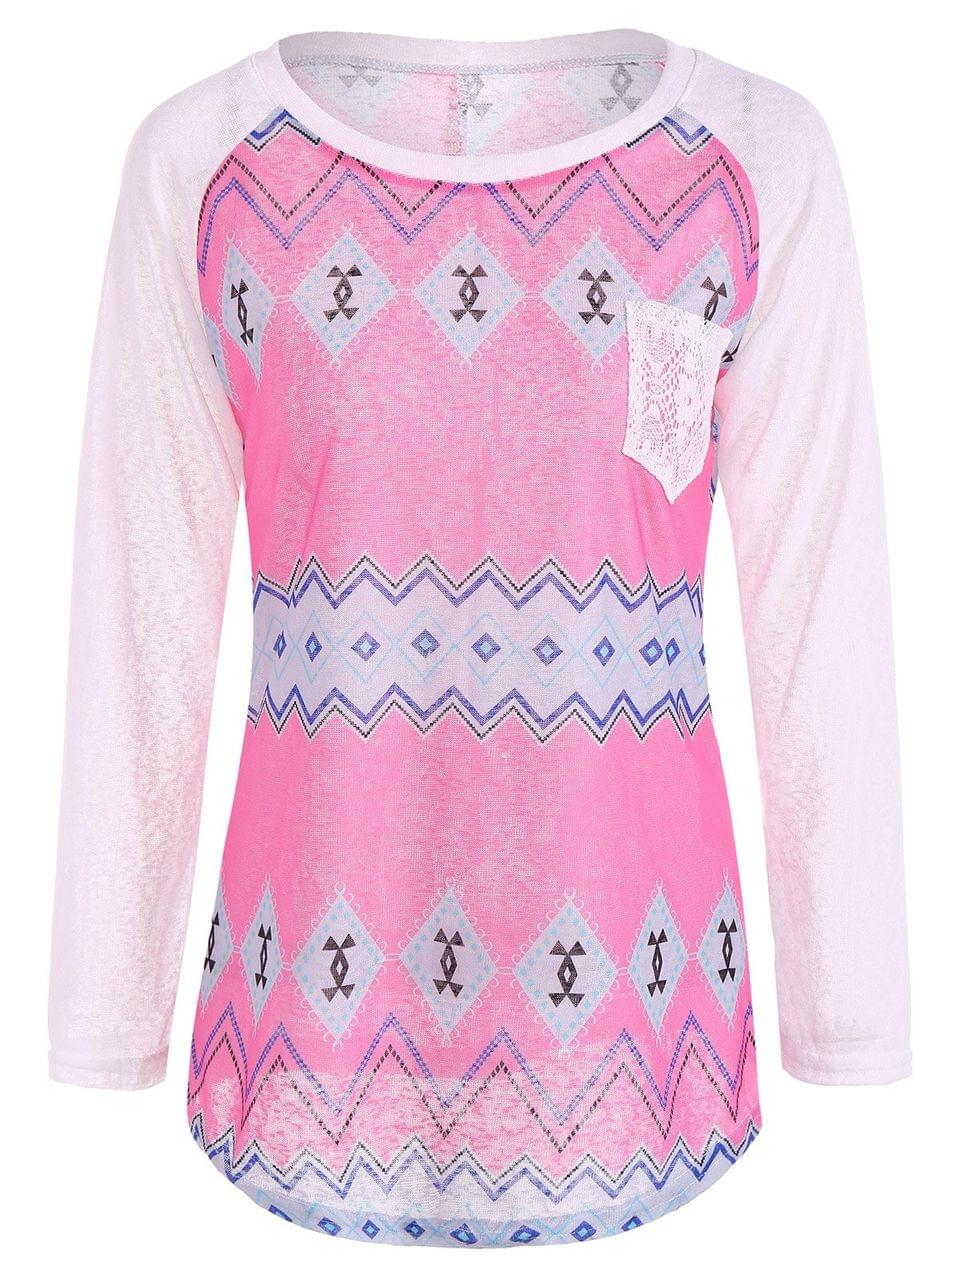 Women's Tribal Print Long Sleeve Pocket Tee - Rose + White S